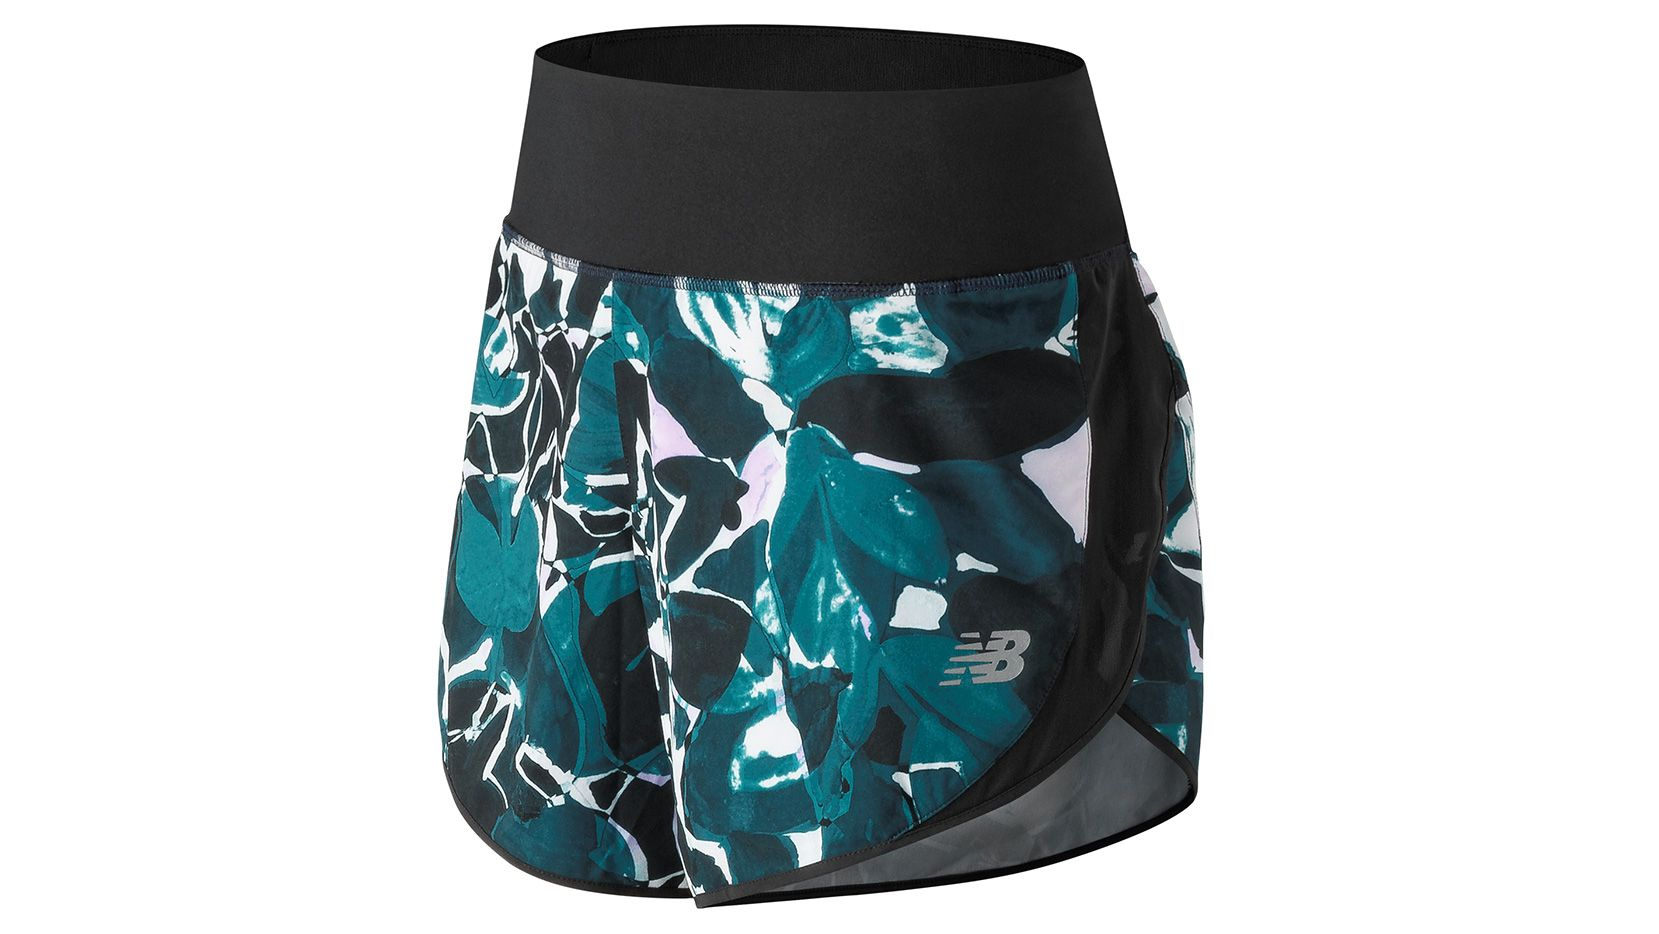 PRINTED IMPACT SHORT 5 IN